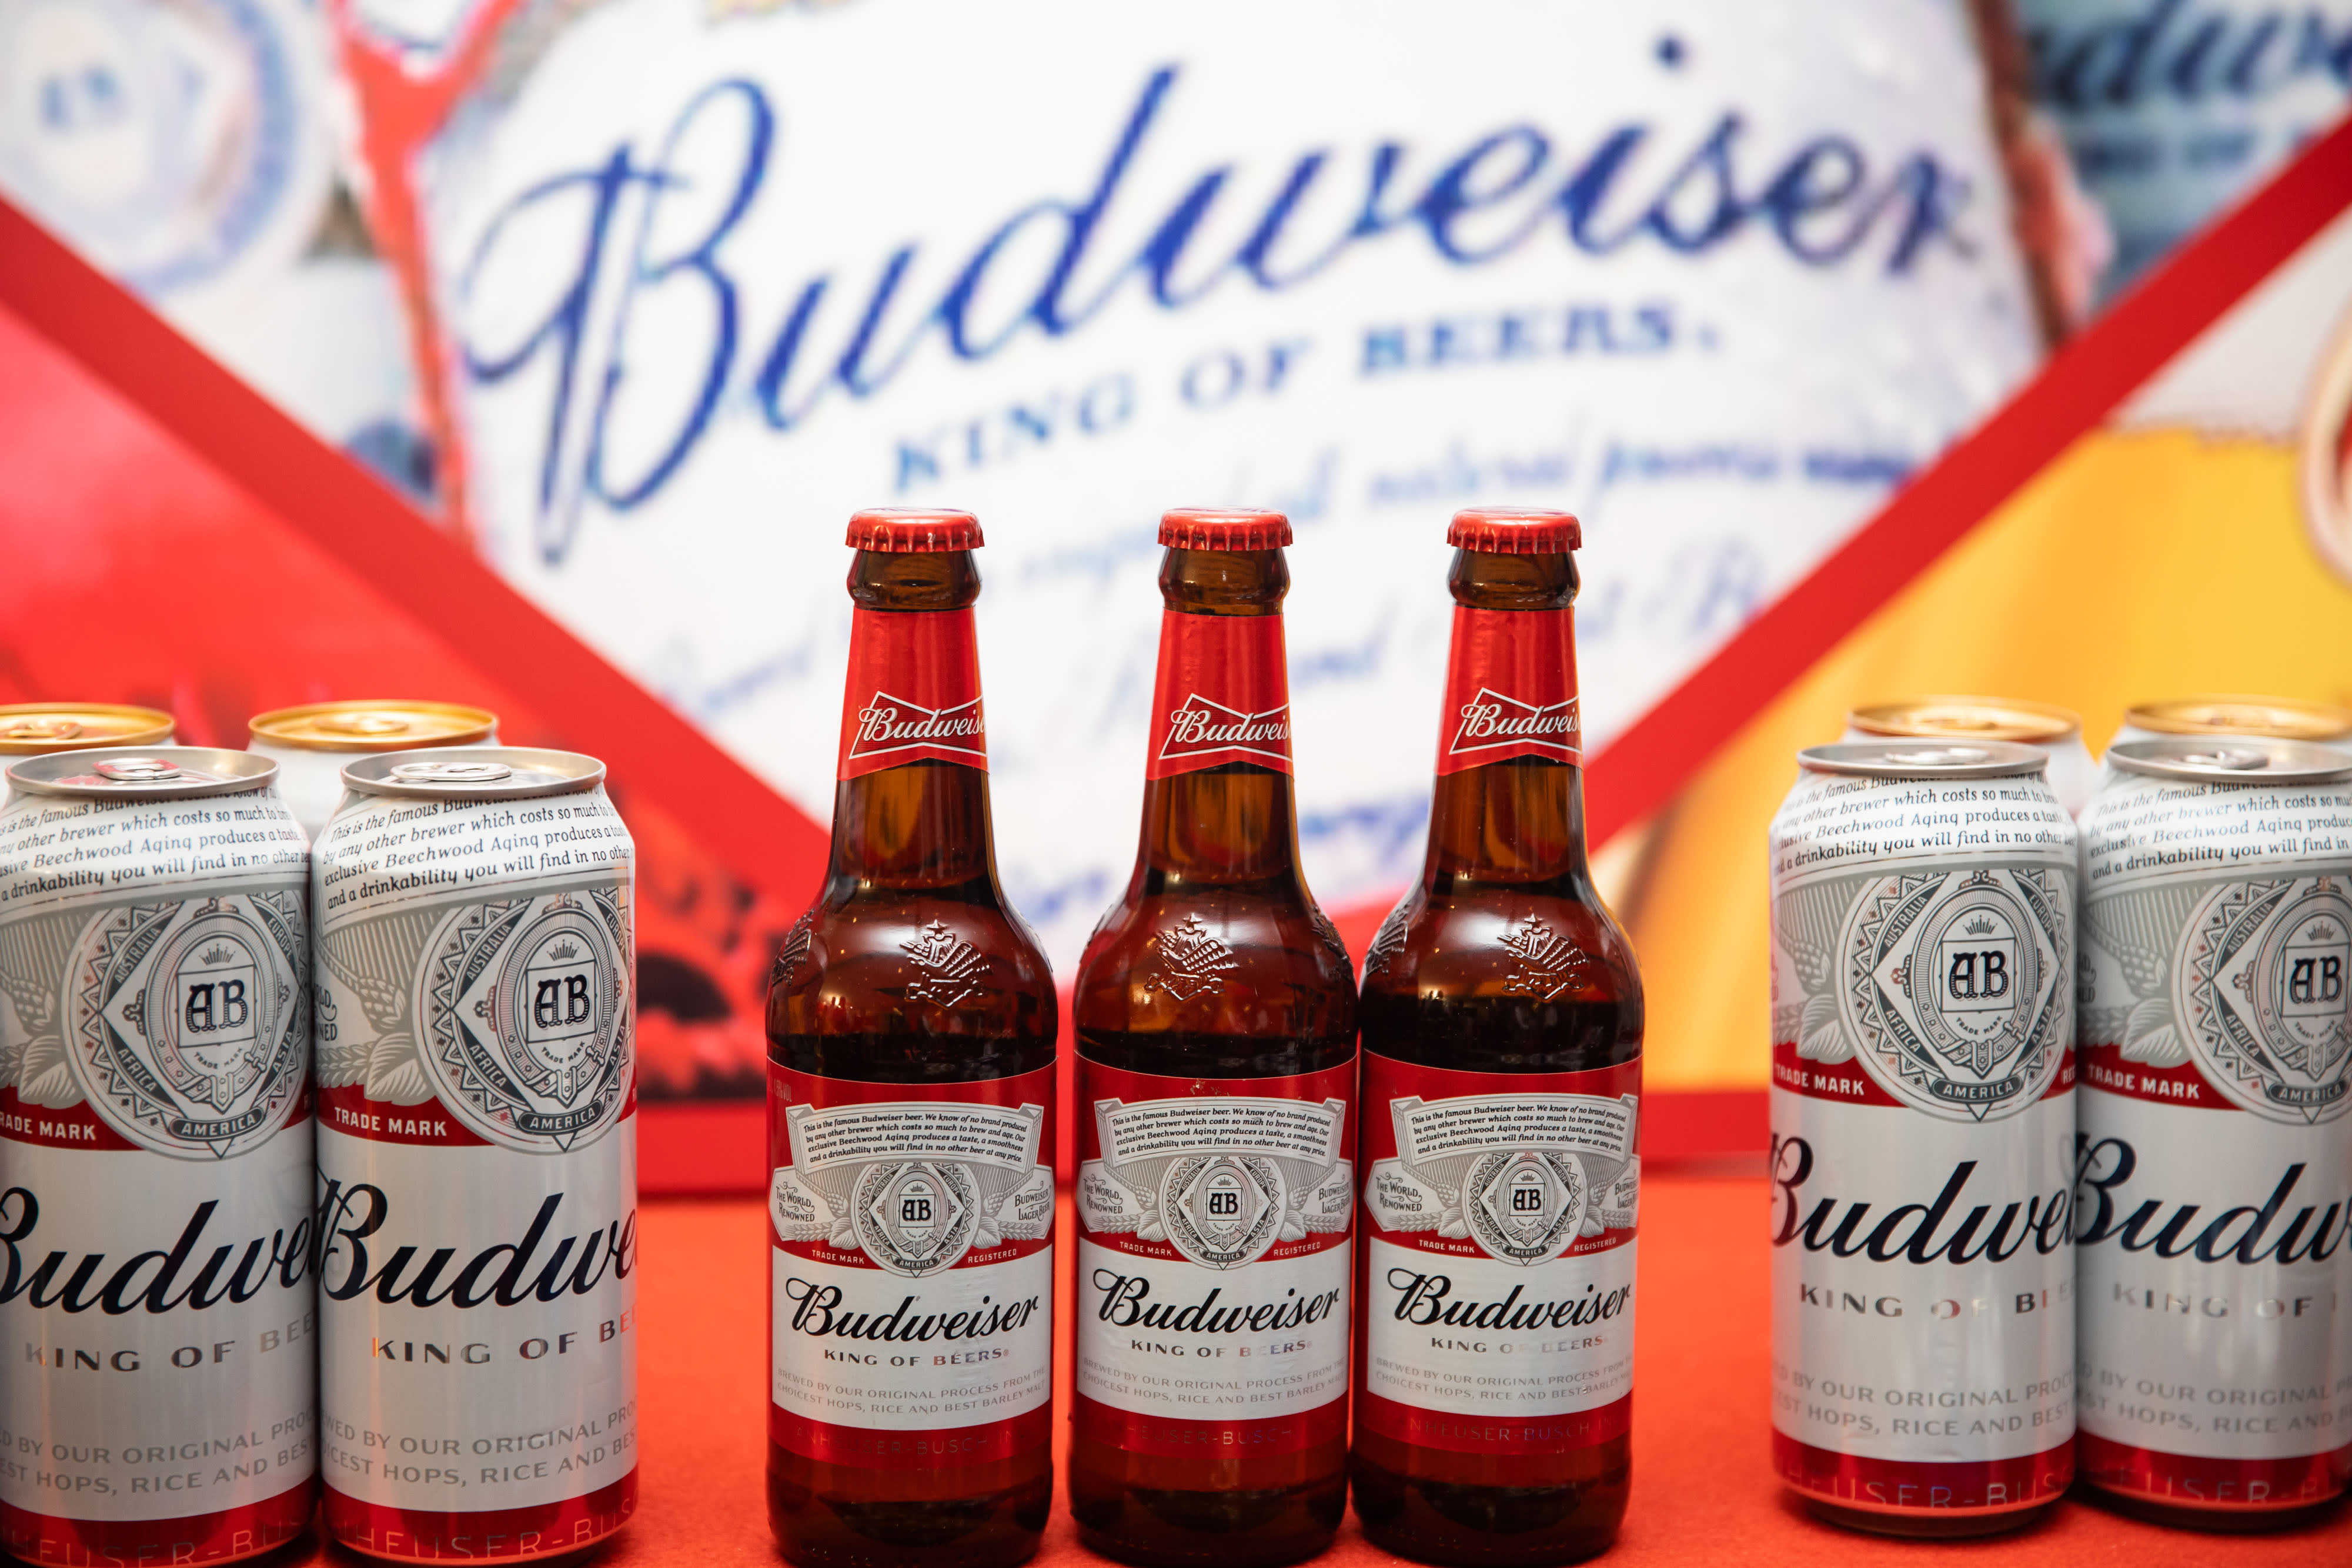 Budweiser wants to take on China, the world's largest beer market where local brews rule